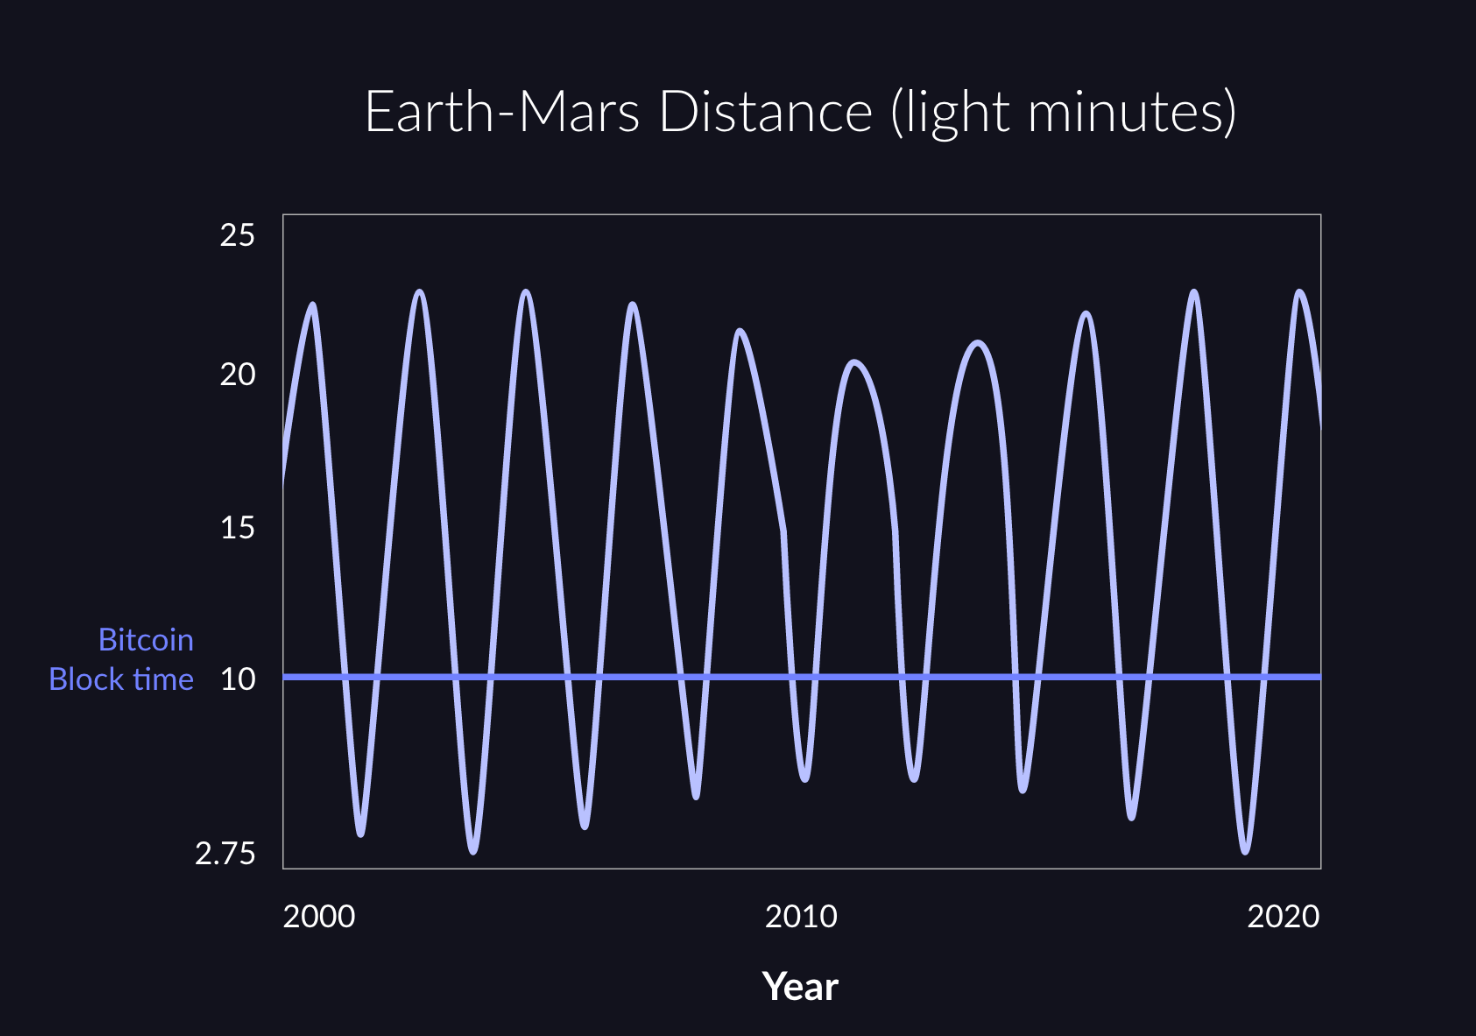 The distance between Earth & Mars varies between less than and much greater than the bitcoin block time.